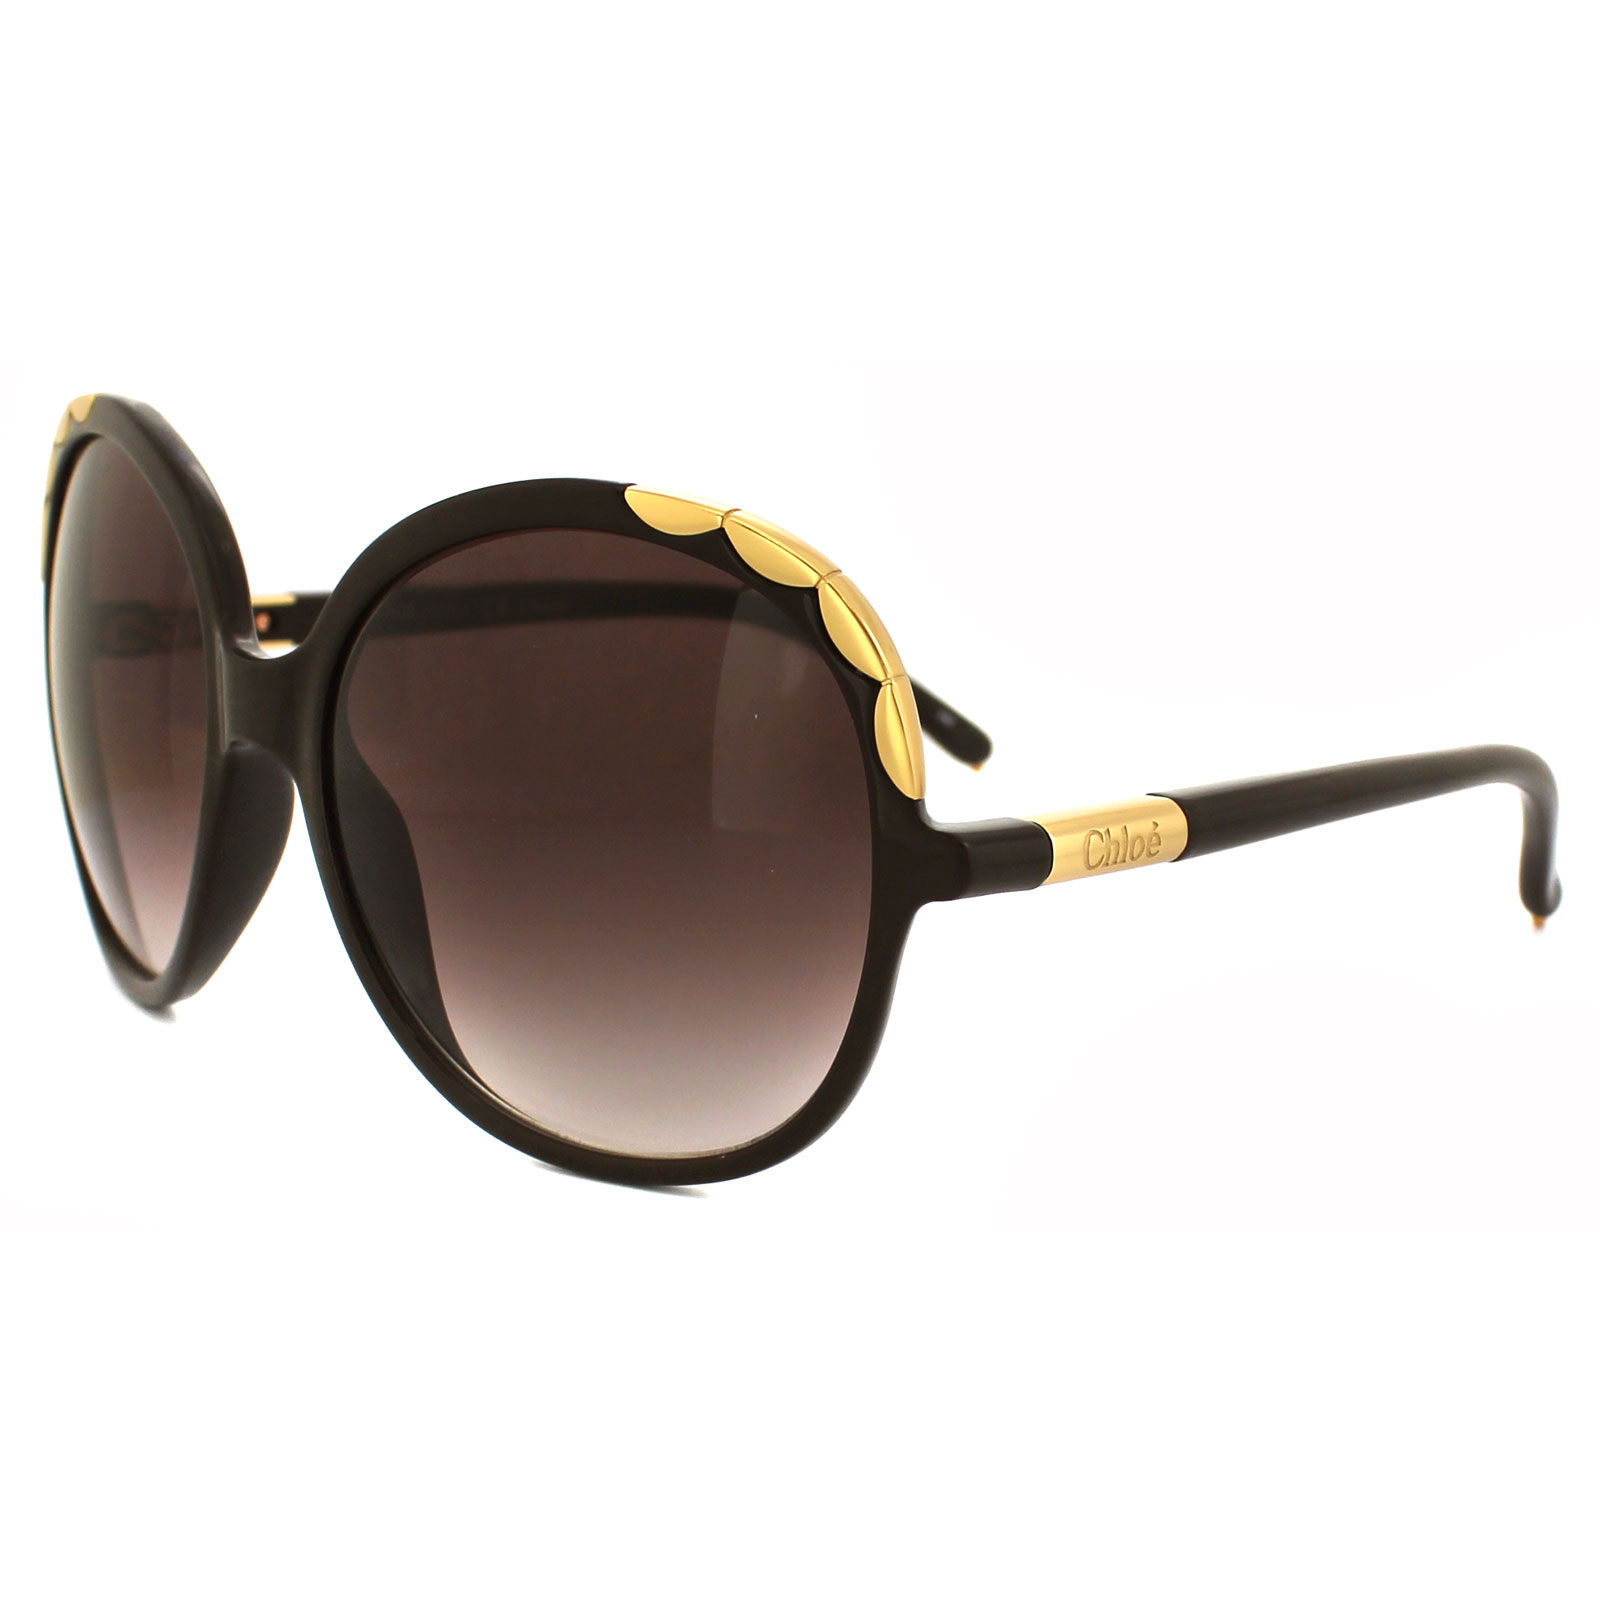 Chloe Sunglasses Chloé is a fashion brand with its roots in the beautiful streets of 's Paris. The founder, Gaby Aghion, was one of the first designers to bring .